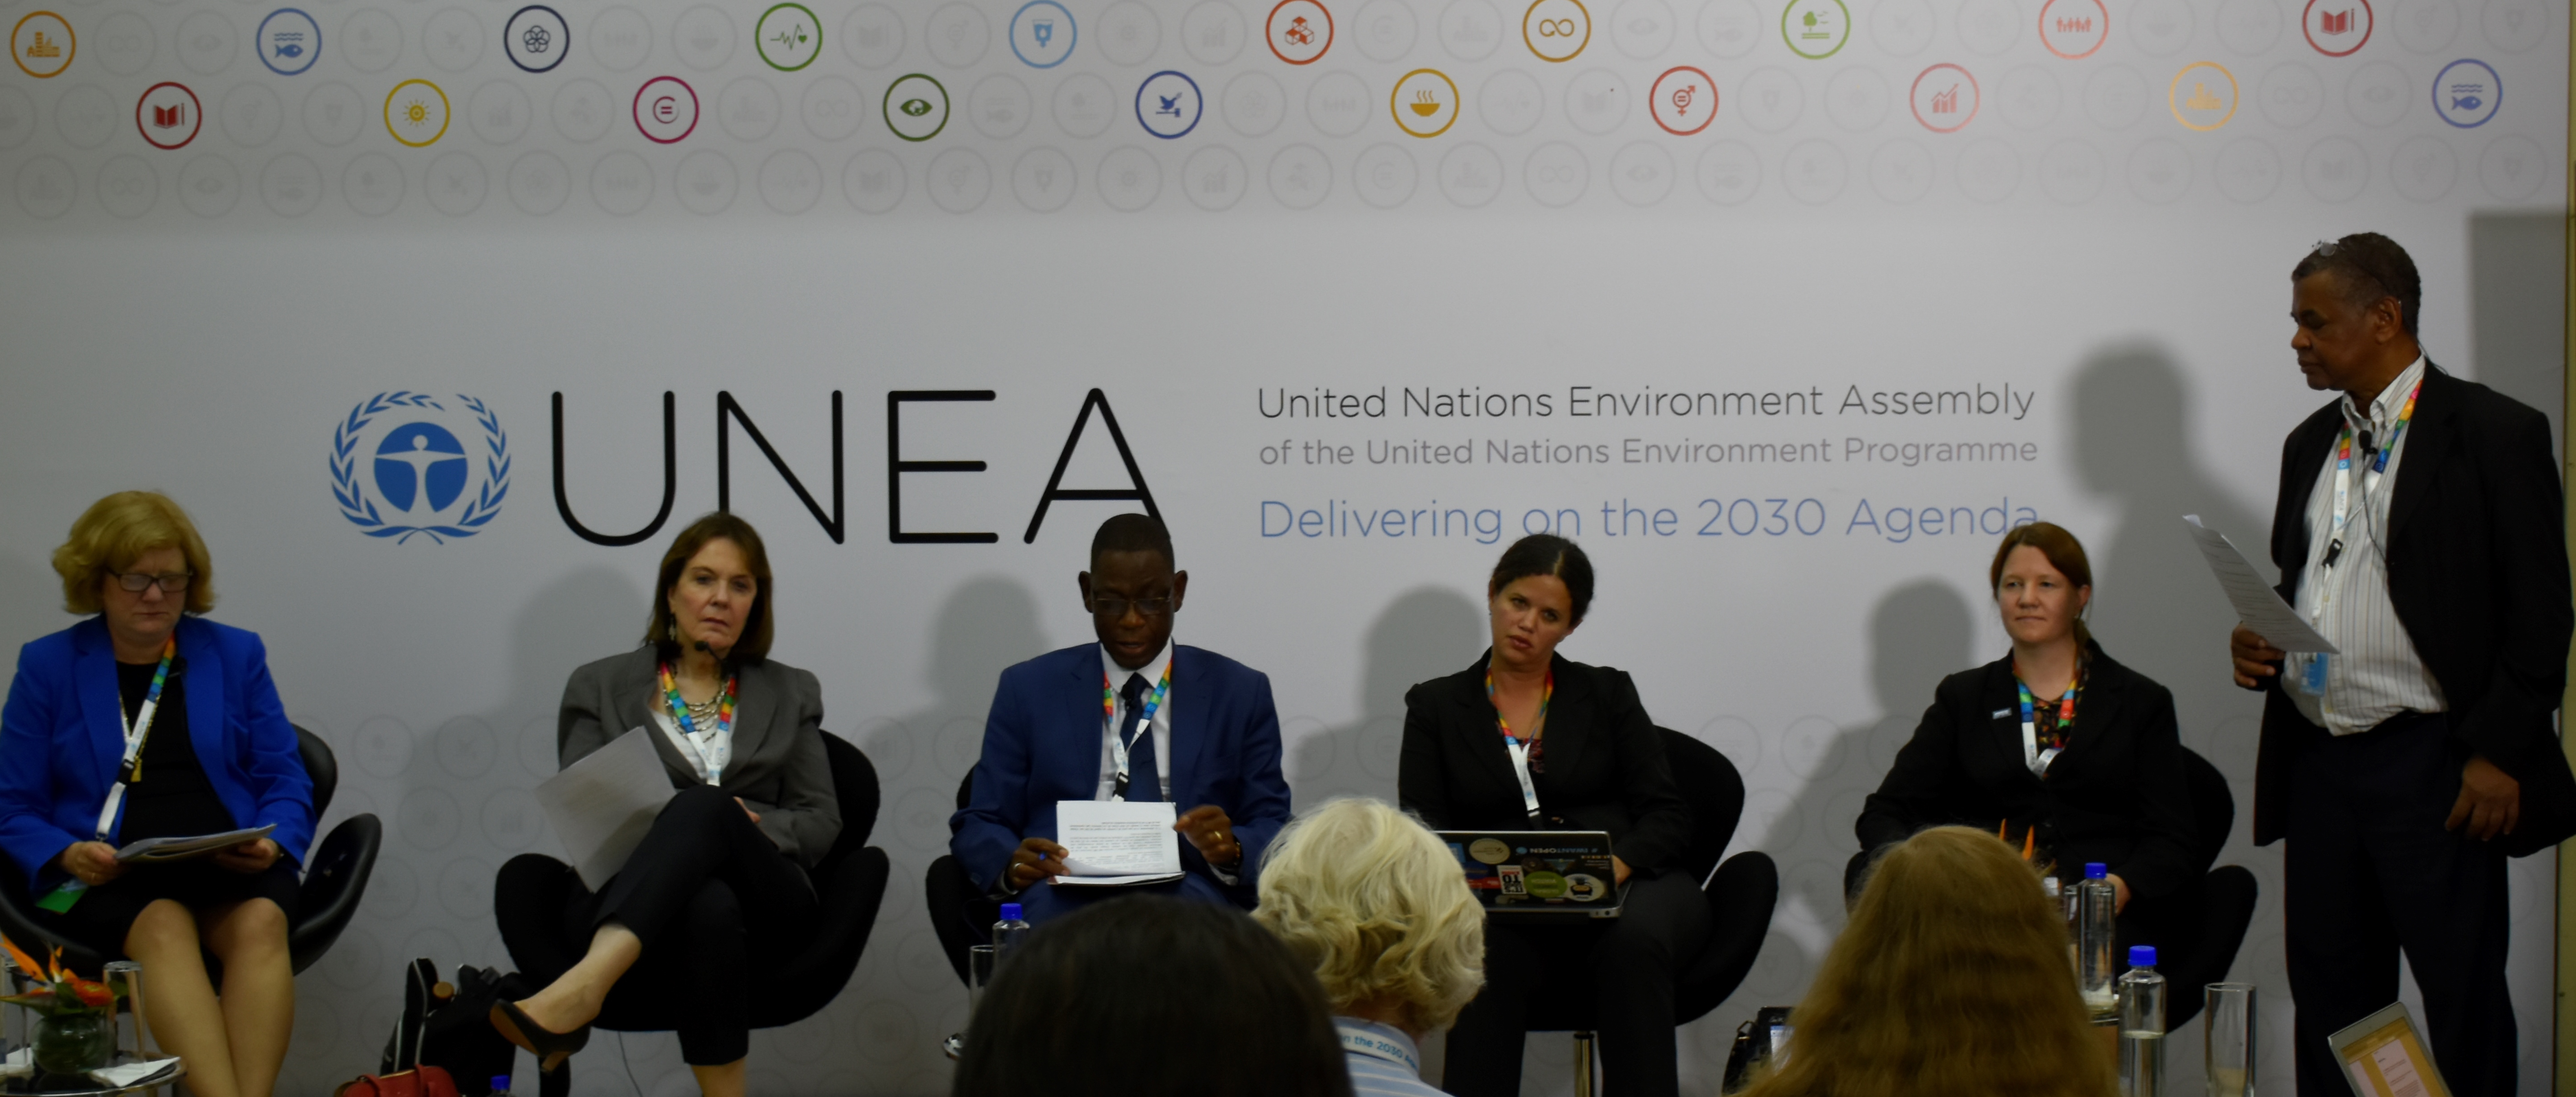 Sara Brosché and other panelists at the UNEA2 side event